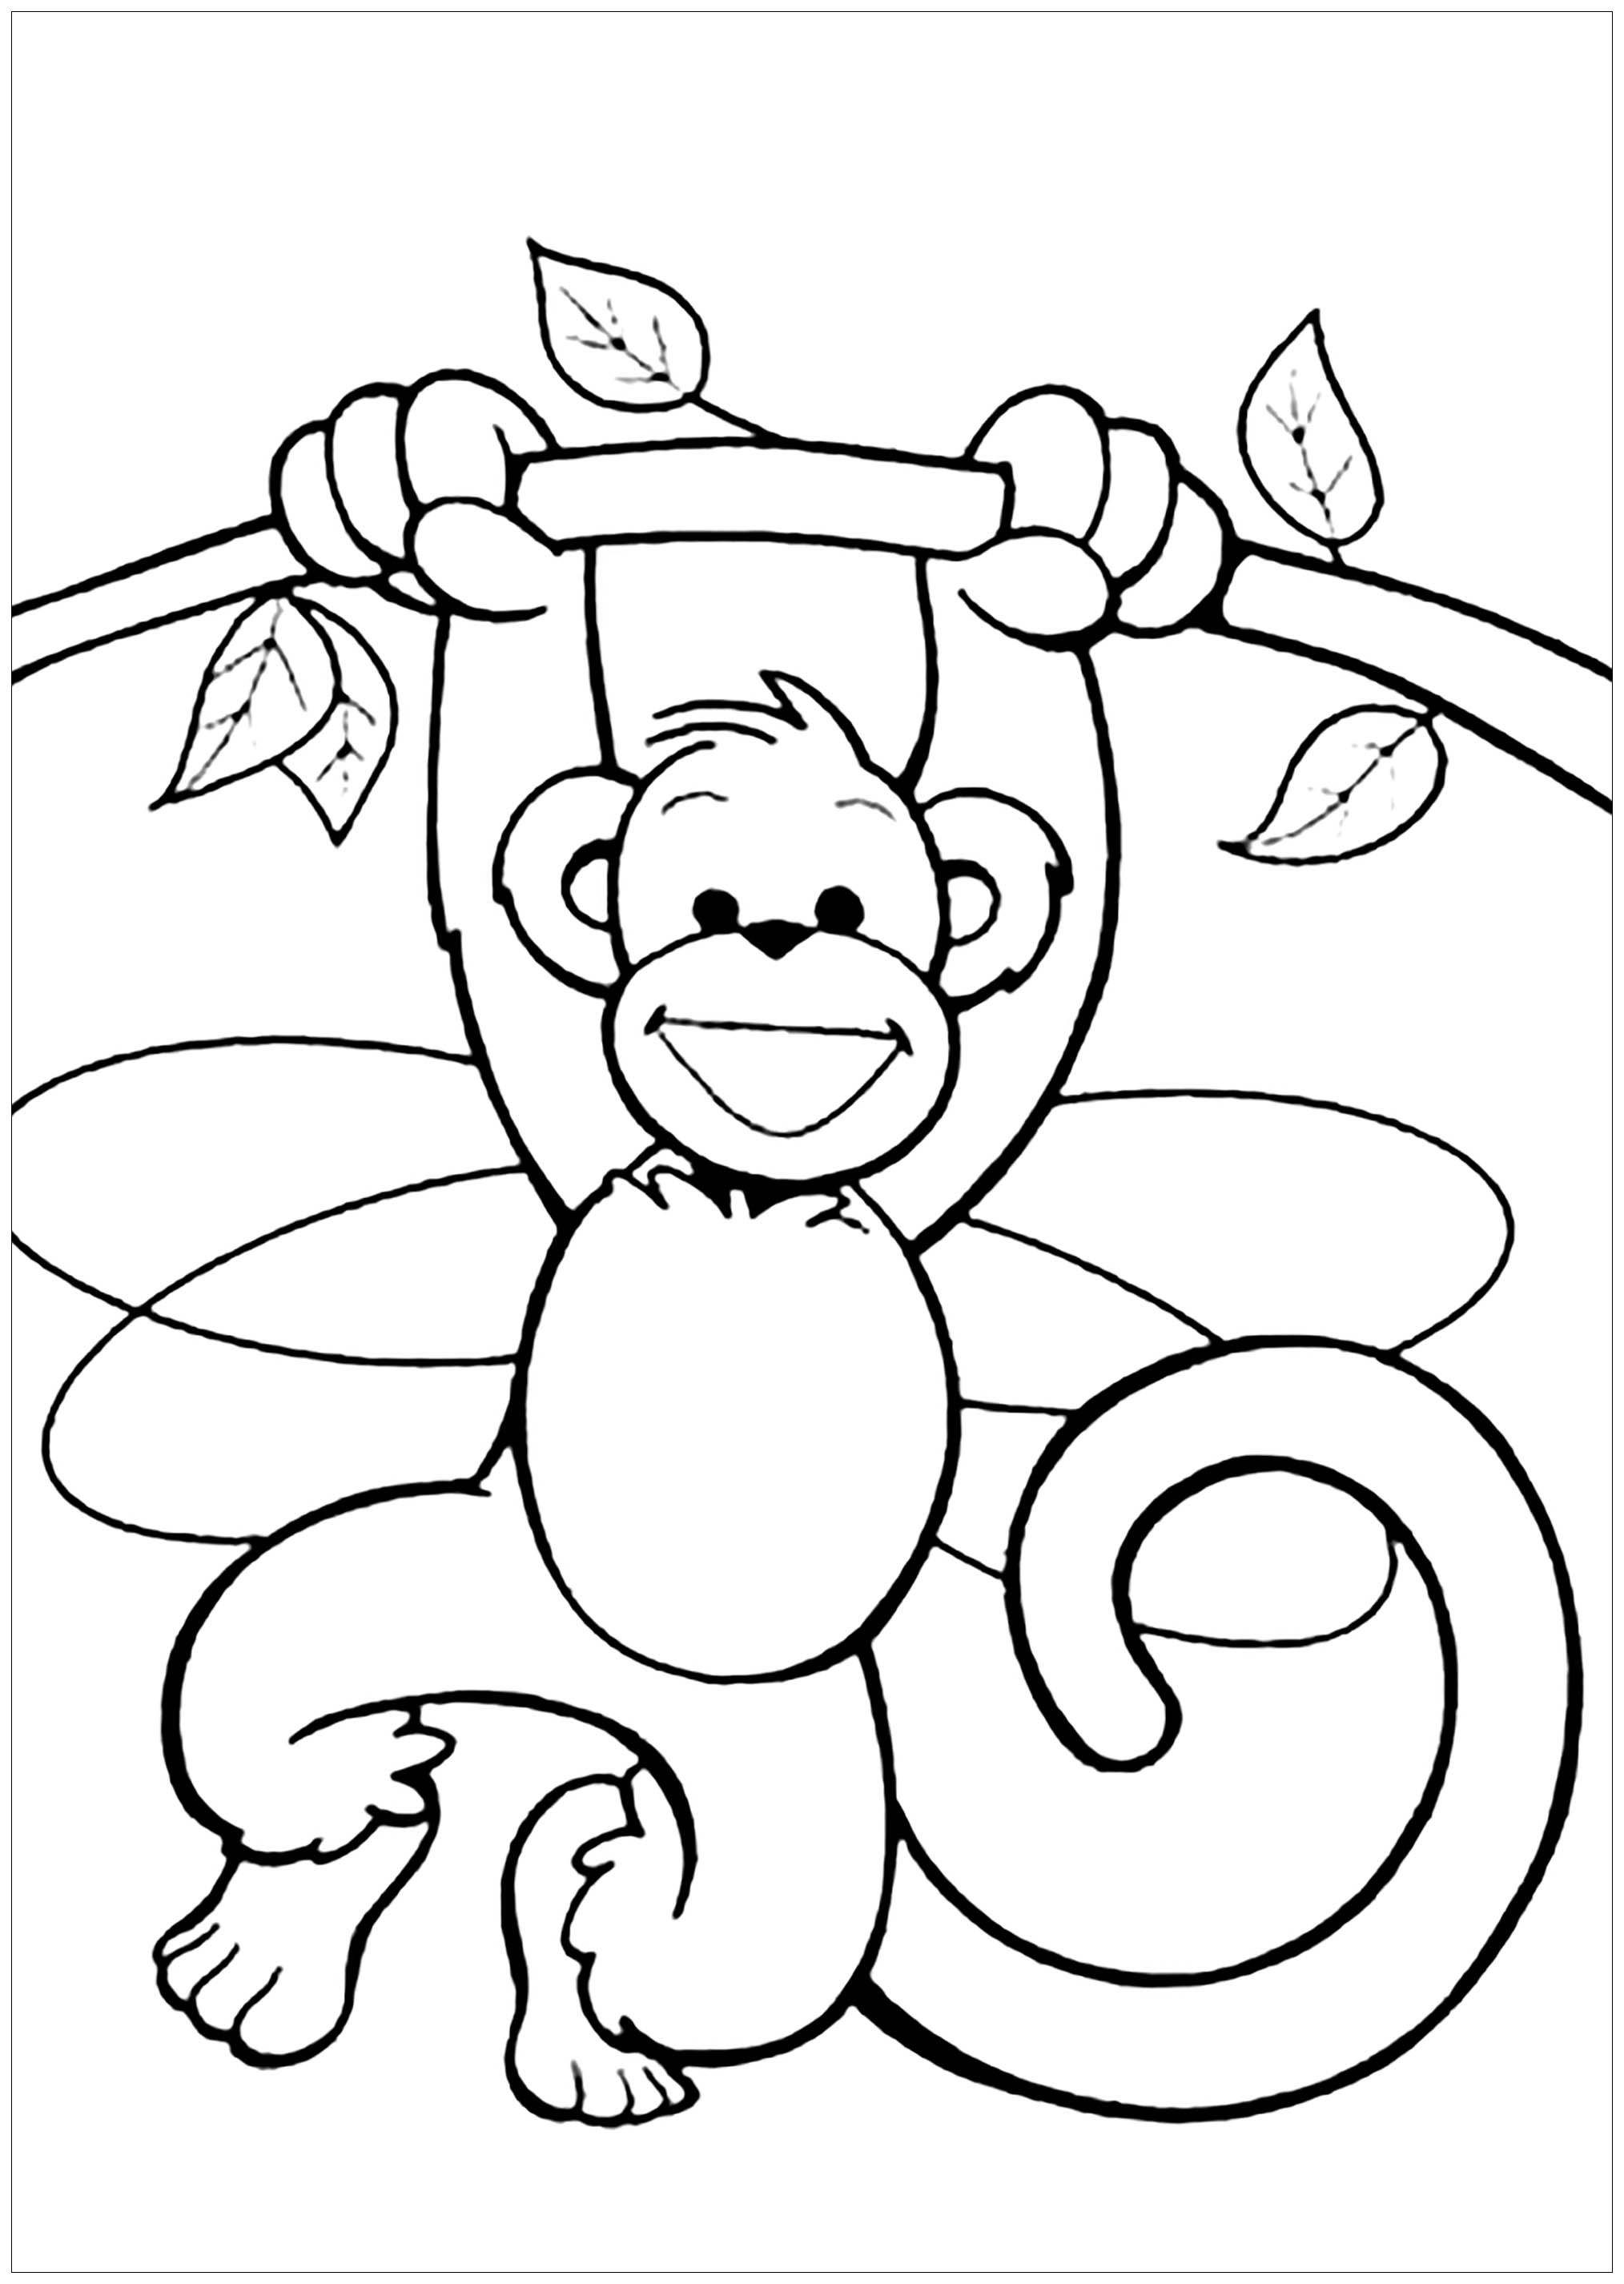 printable pictures to paint for kids free printable rainbow coloring pages for kids rainbow kids pictures for printable paint to